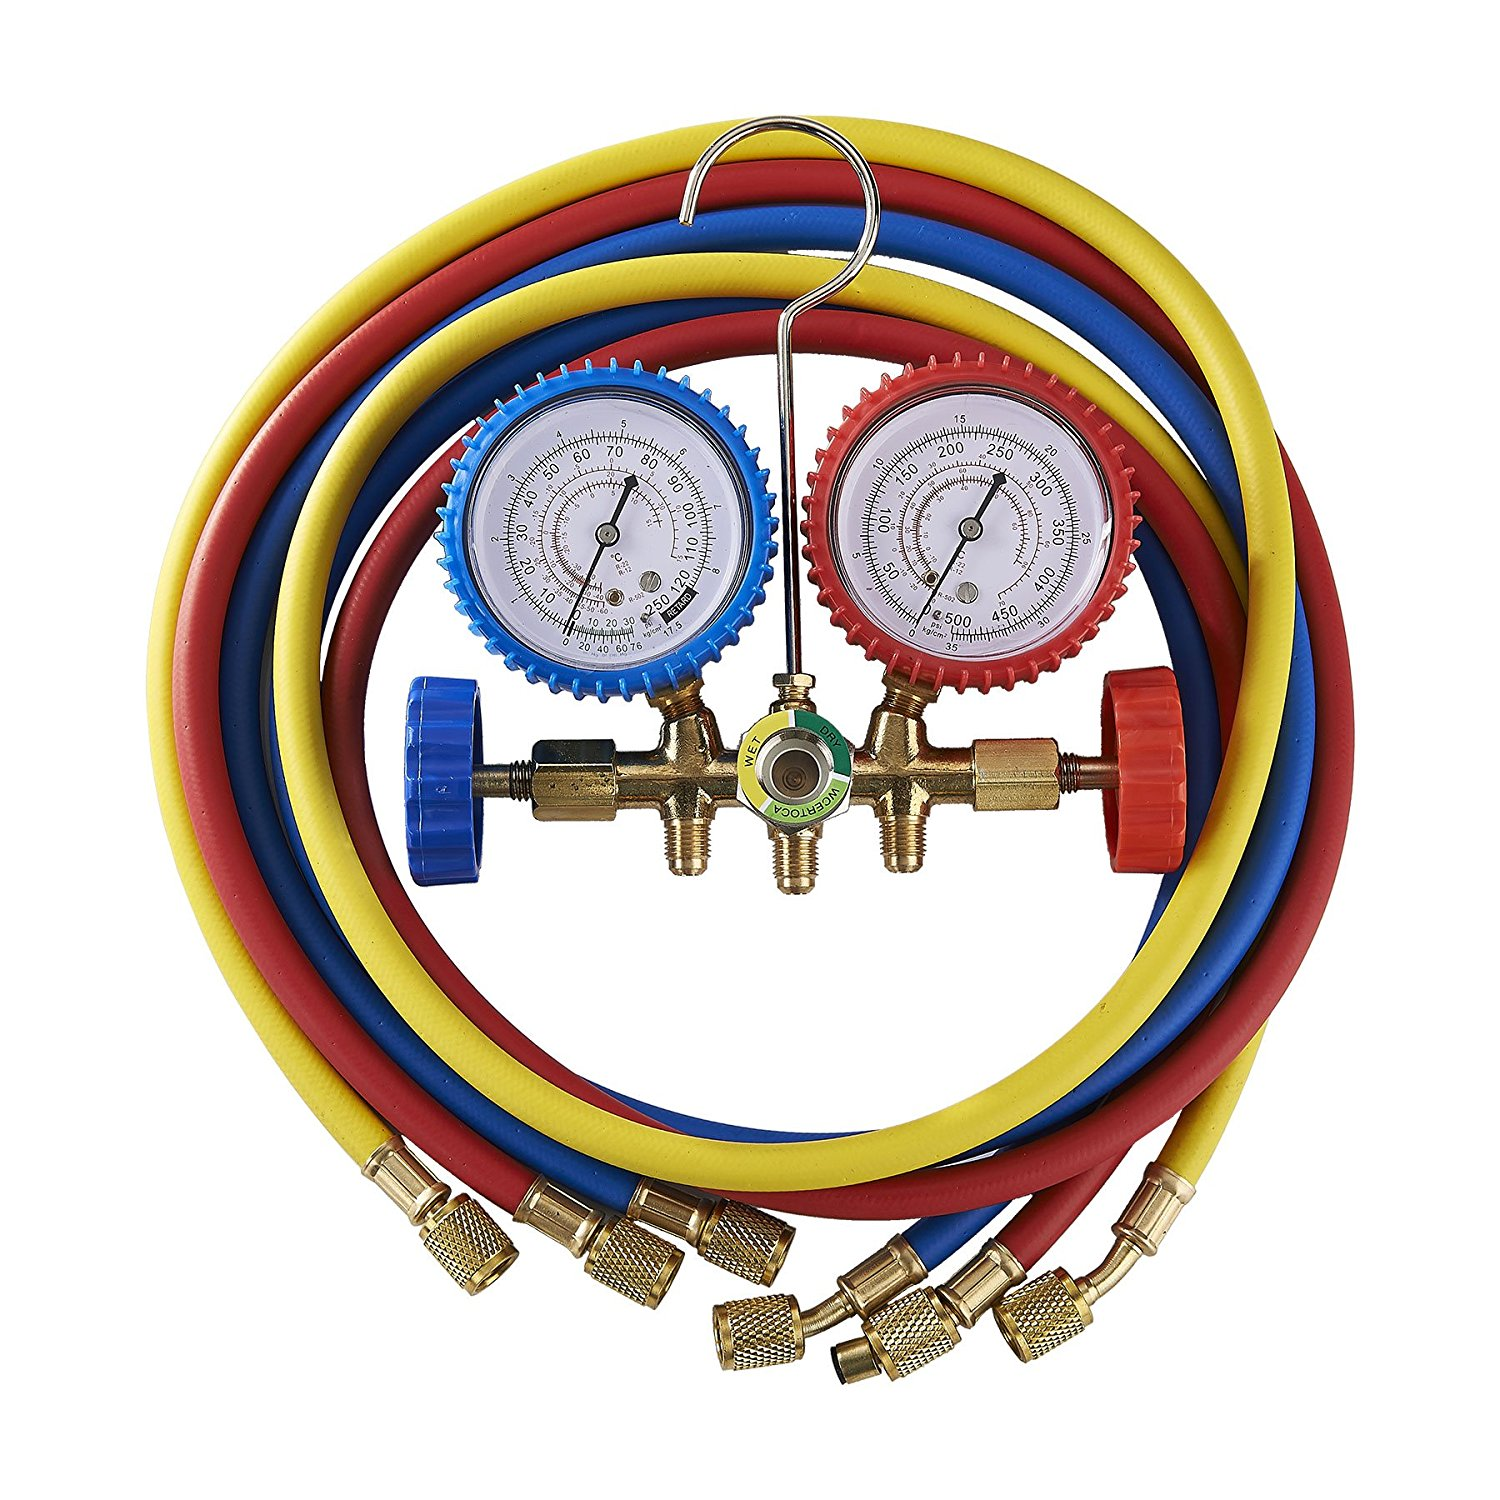 Tek Motion 5FT AC Diagnostic Manifold Freon Gauge Set for R12, R22, R502 Refrigerants, without Couplers